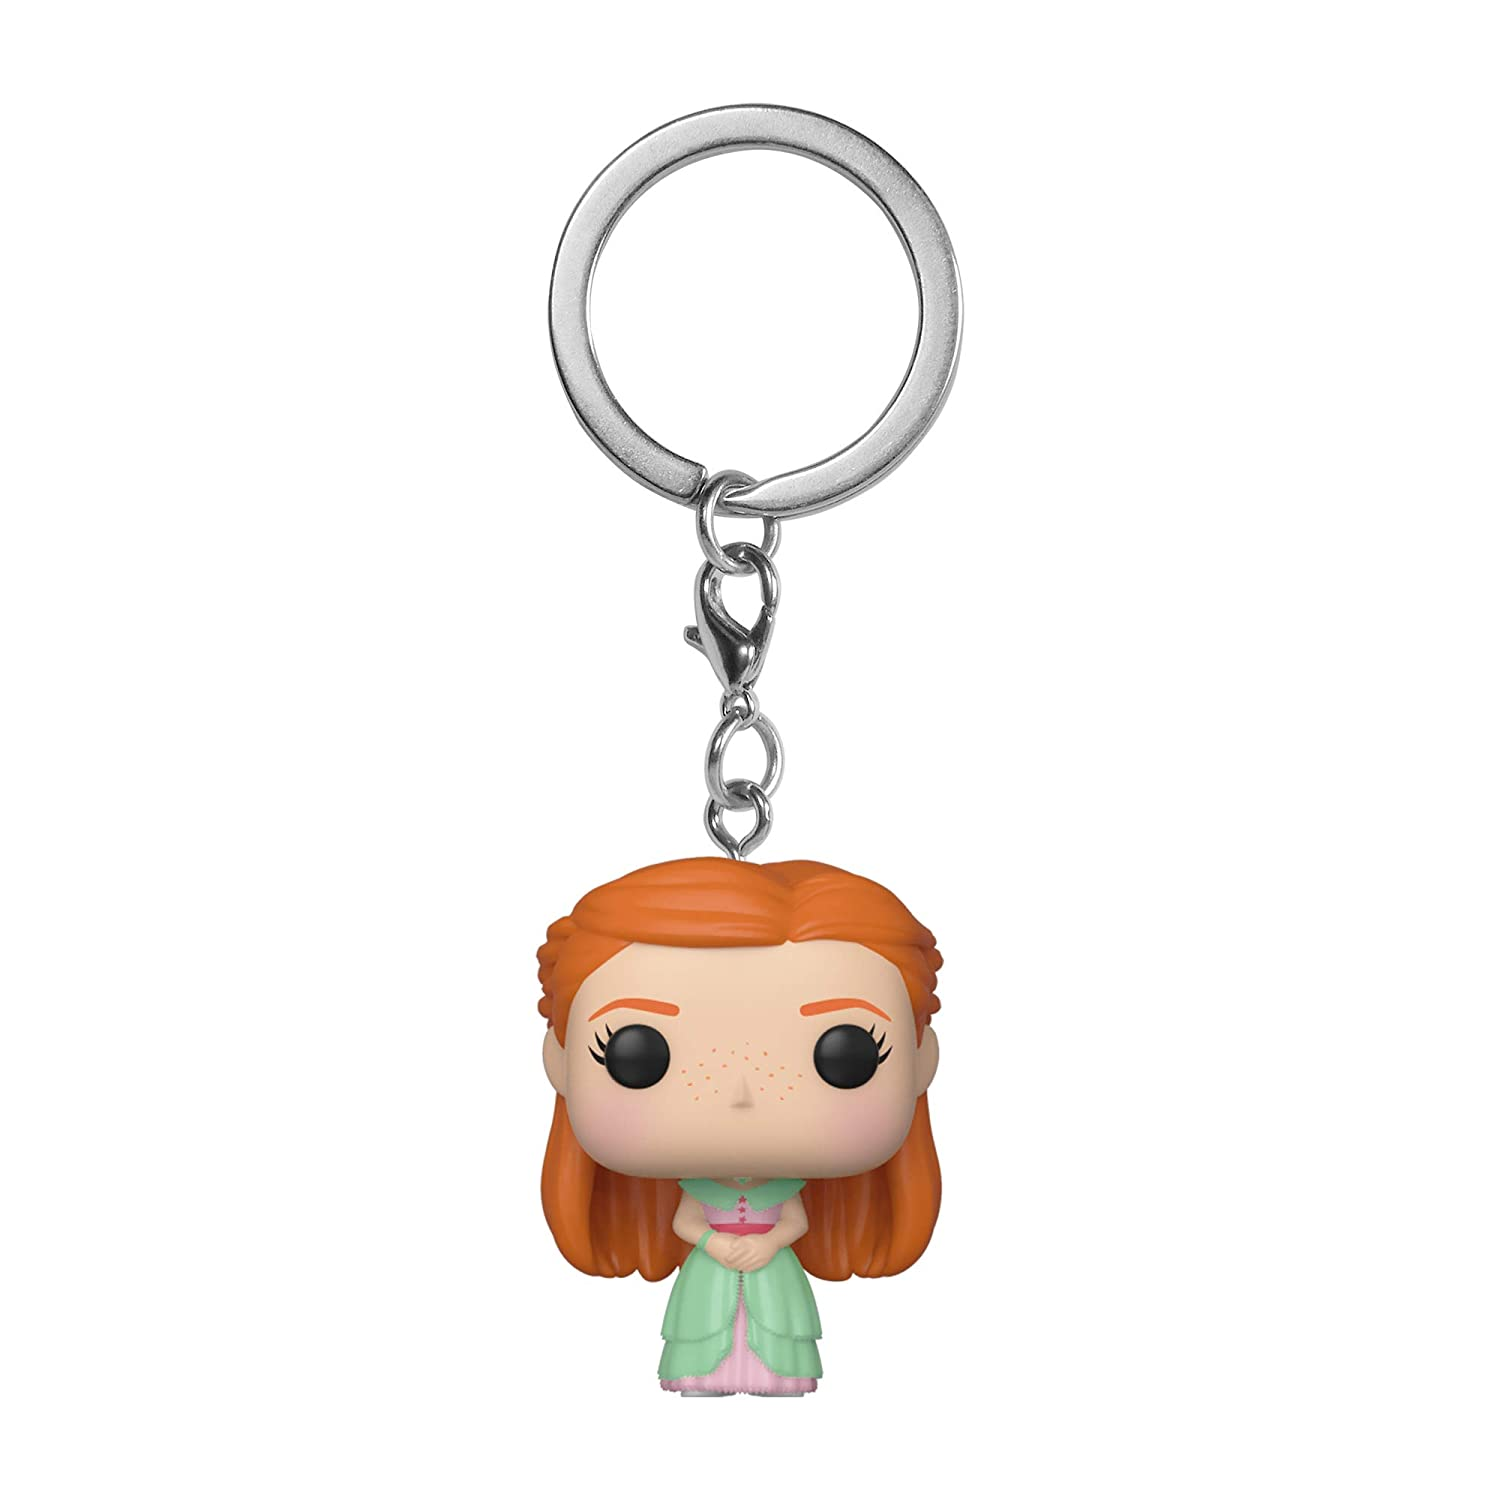 Amazon.com: Funko Pop! Keychains: Harry Potter - Ginny (Yule ...